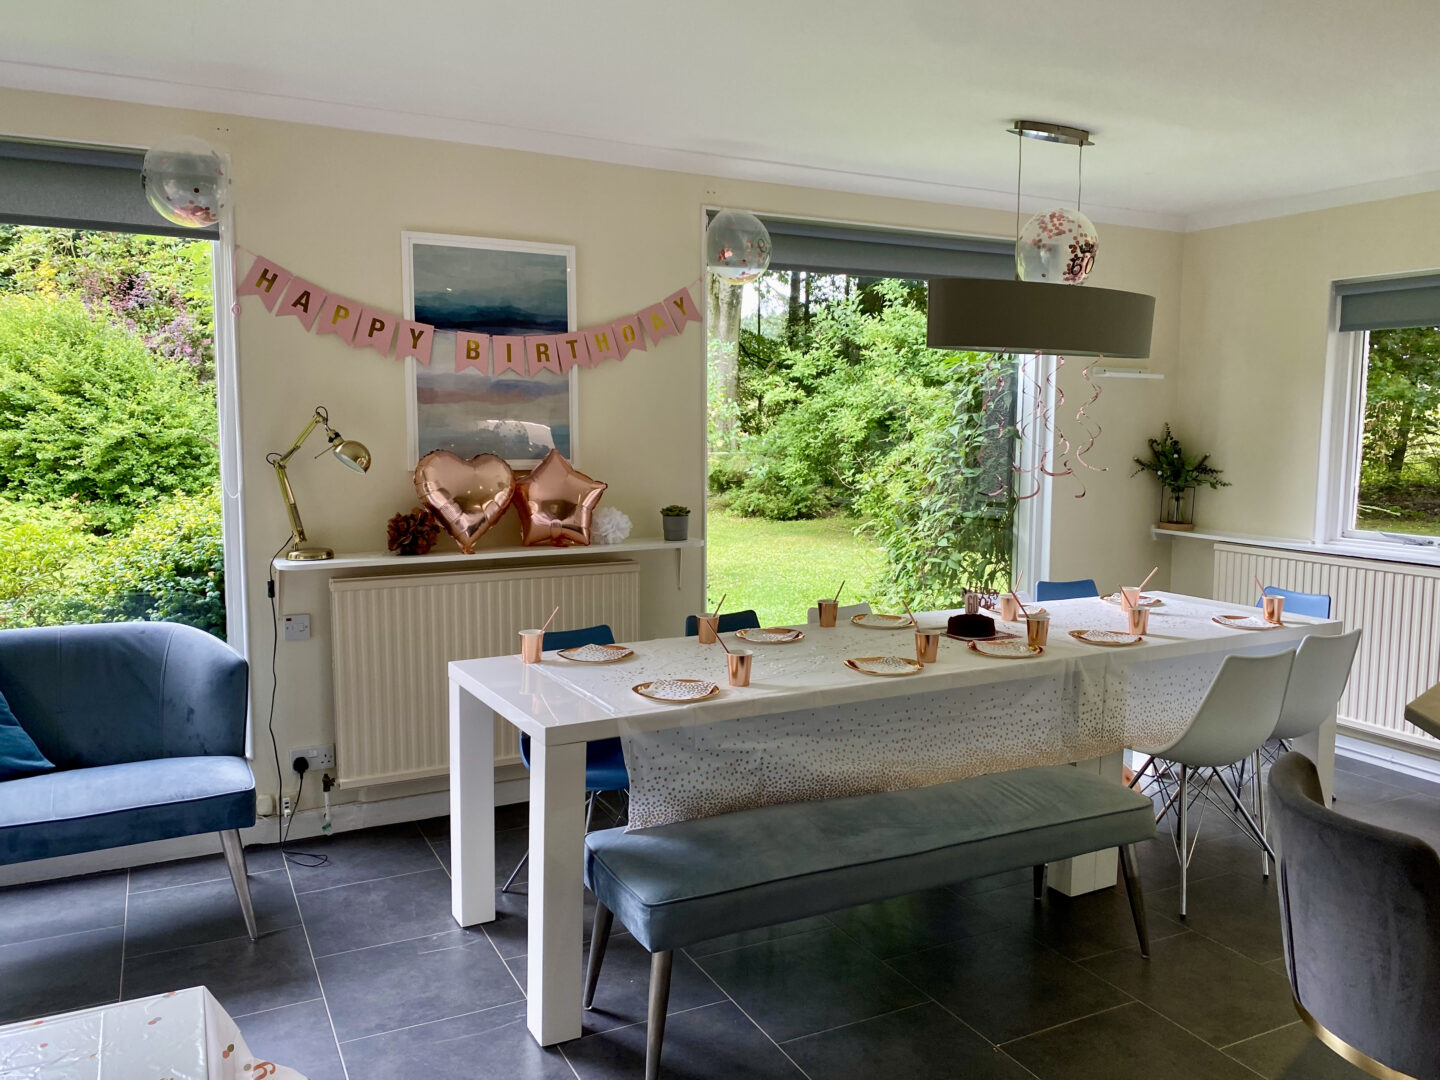 A large kitchen with a white table decorate for a birthday with rose gold decorations